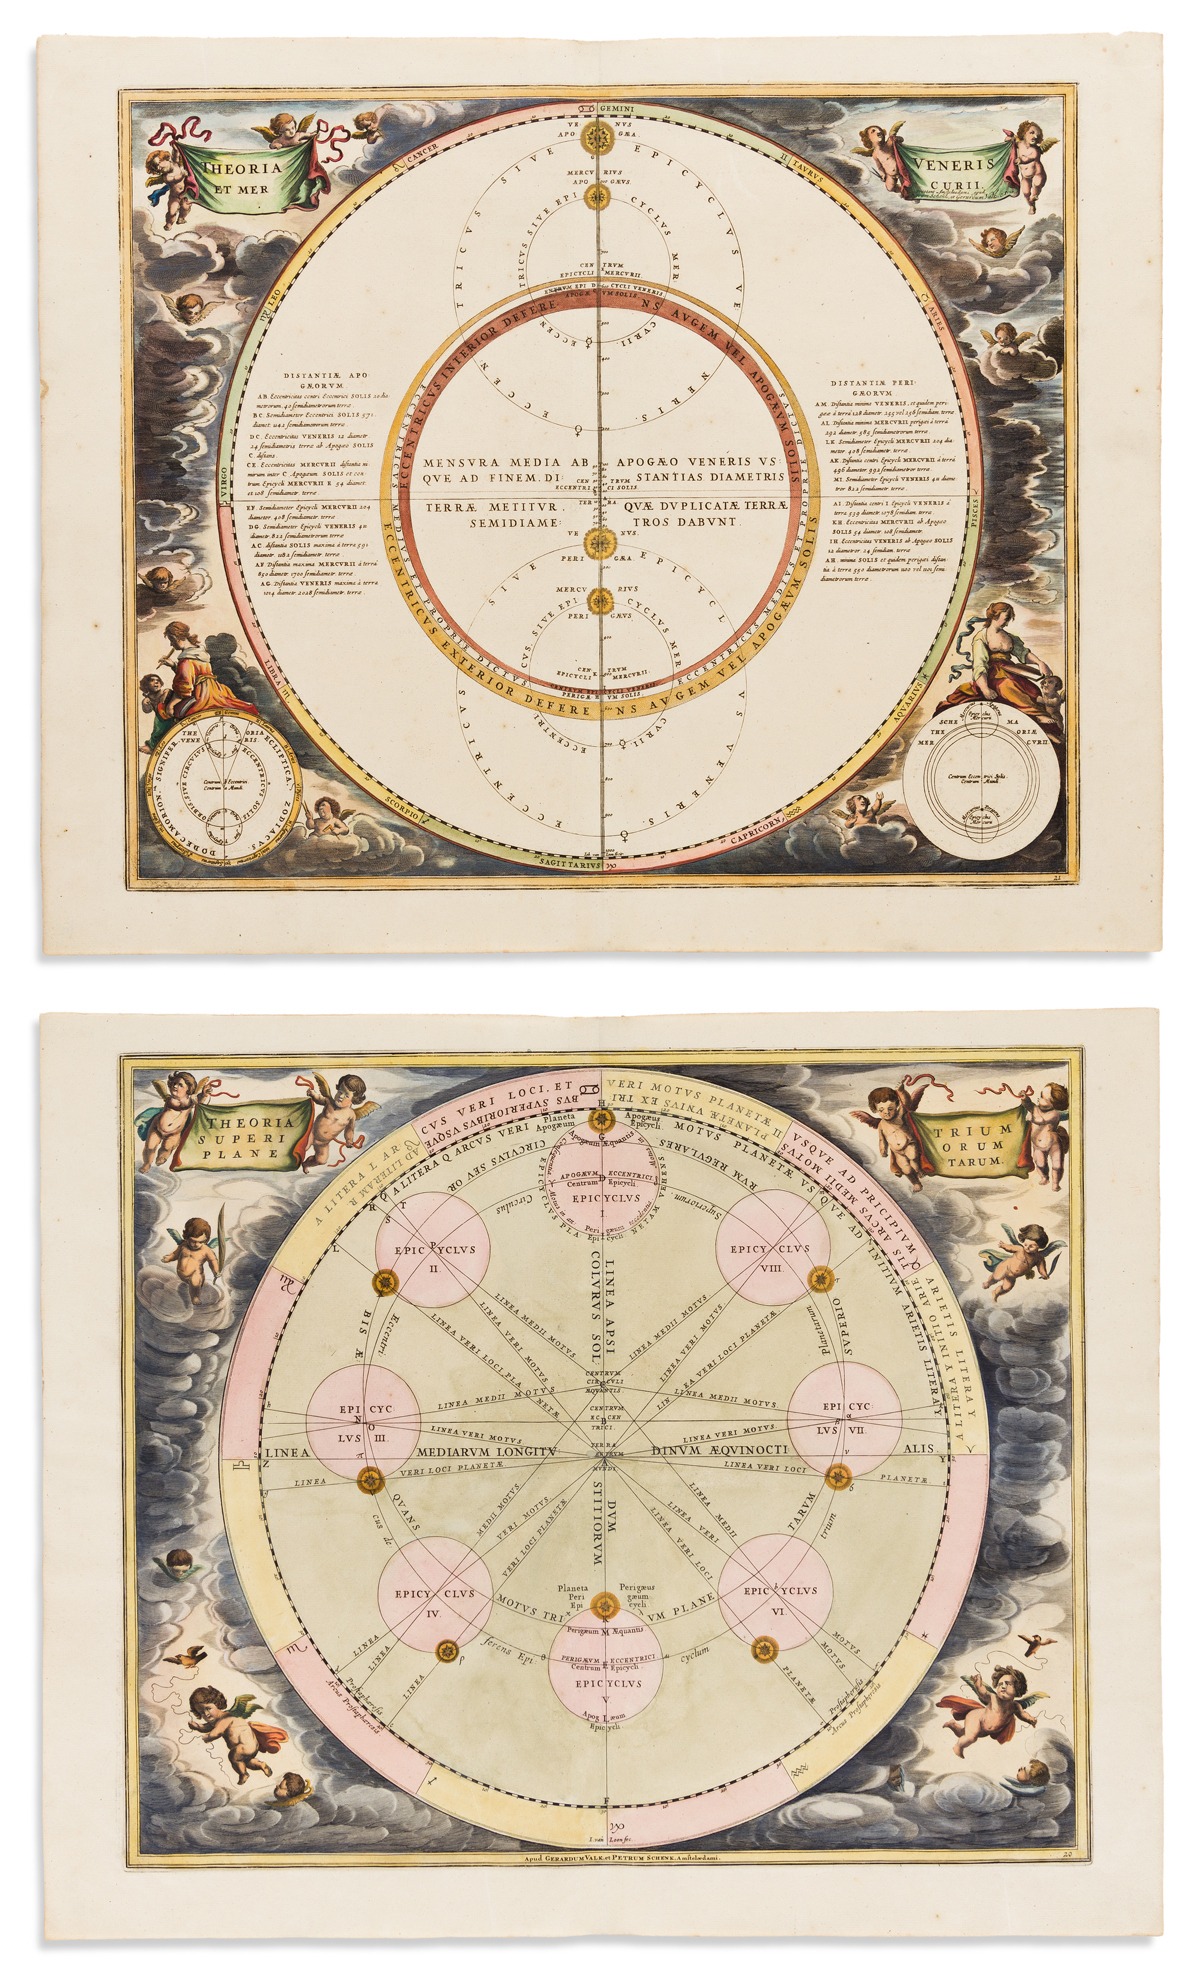 (CELESTIAL.) Cellarius, Andreas. 2 double-page engraved celestial charts.